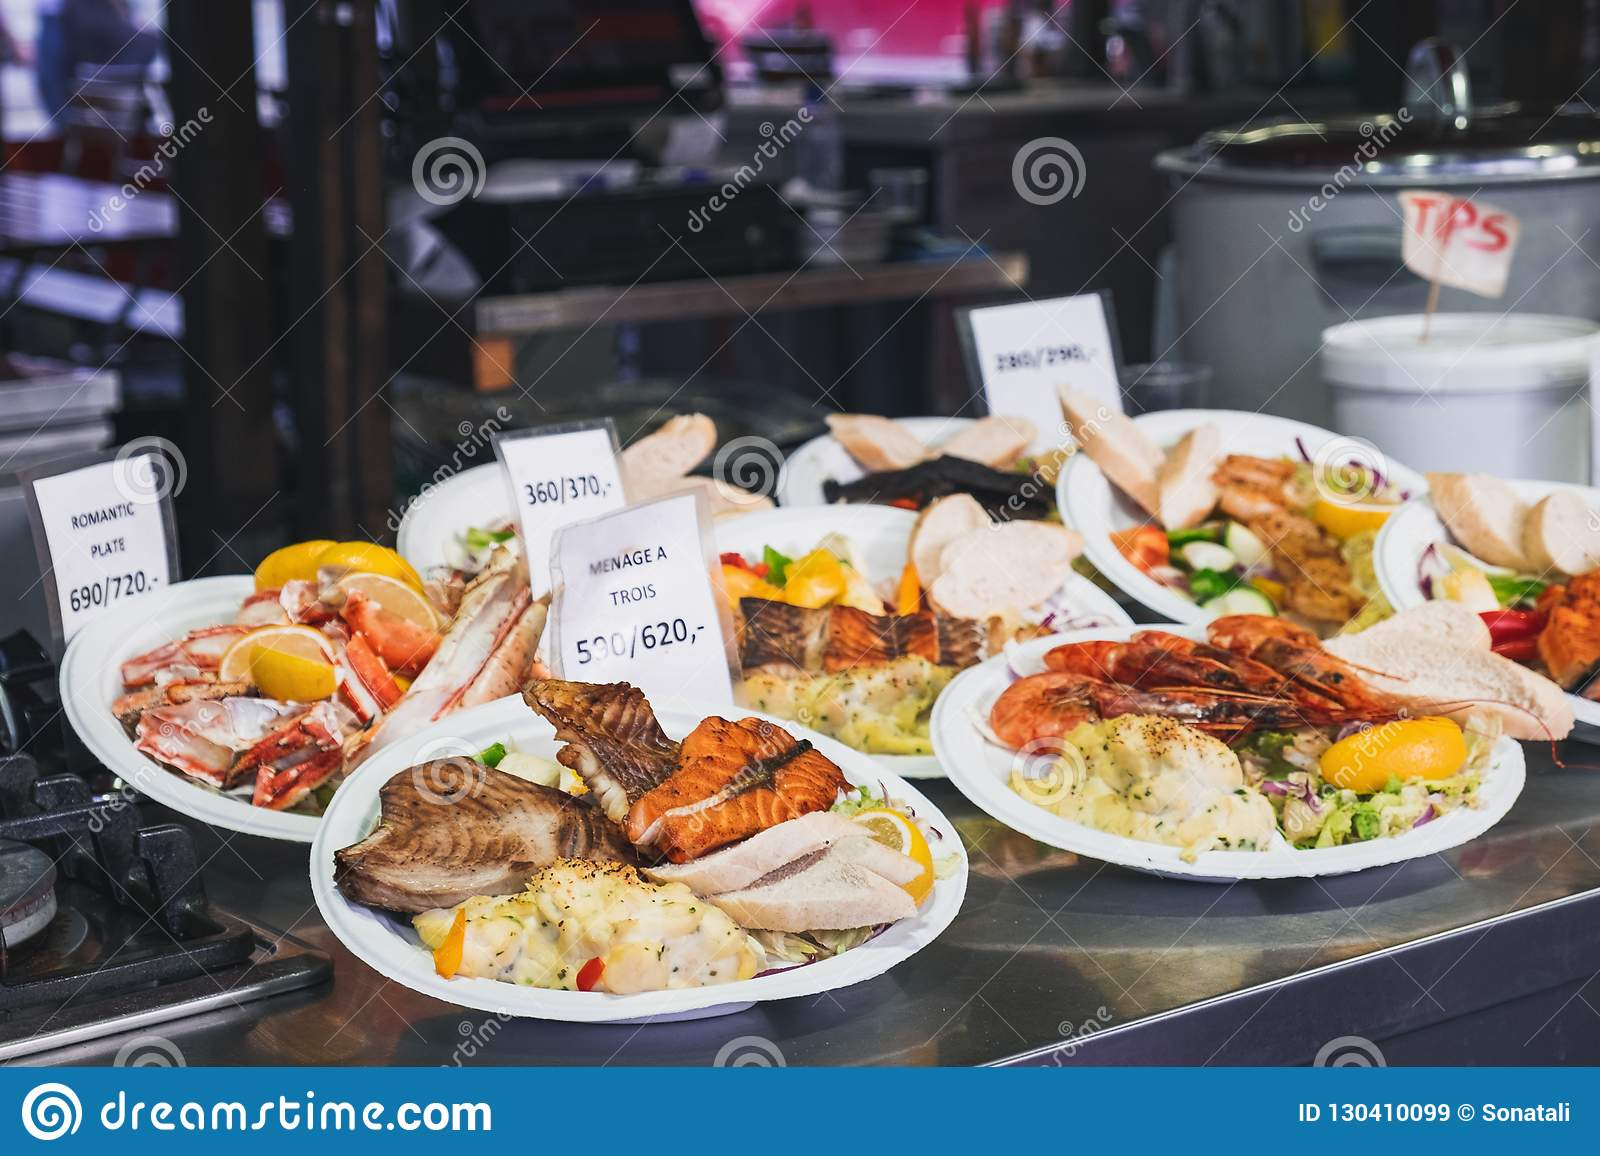 Street Food At Bergen Fish Market, Norway Stock Image